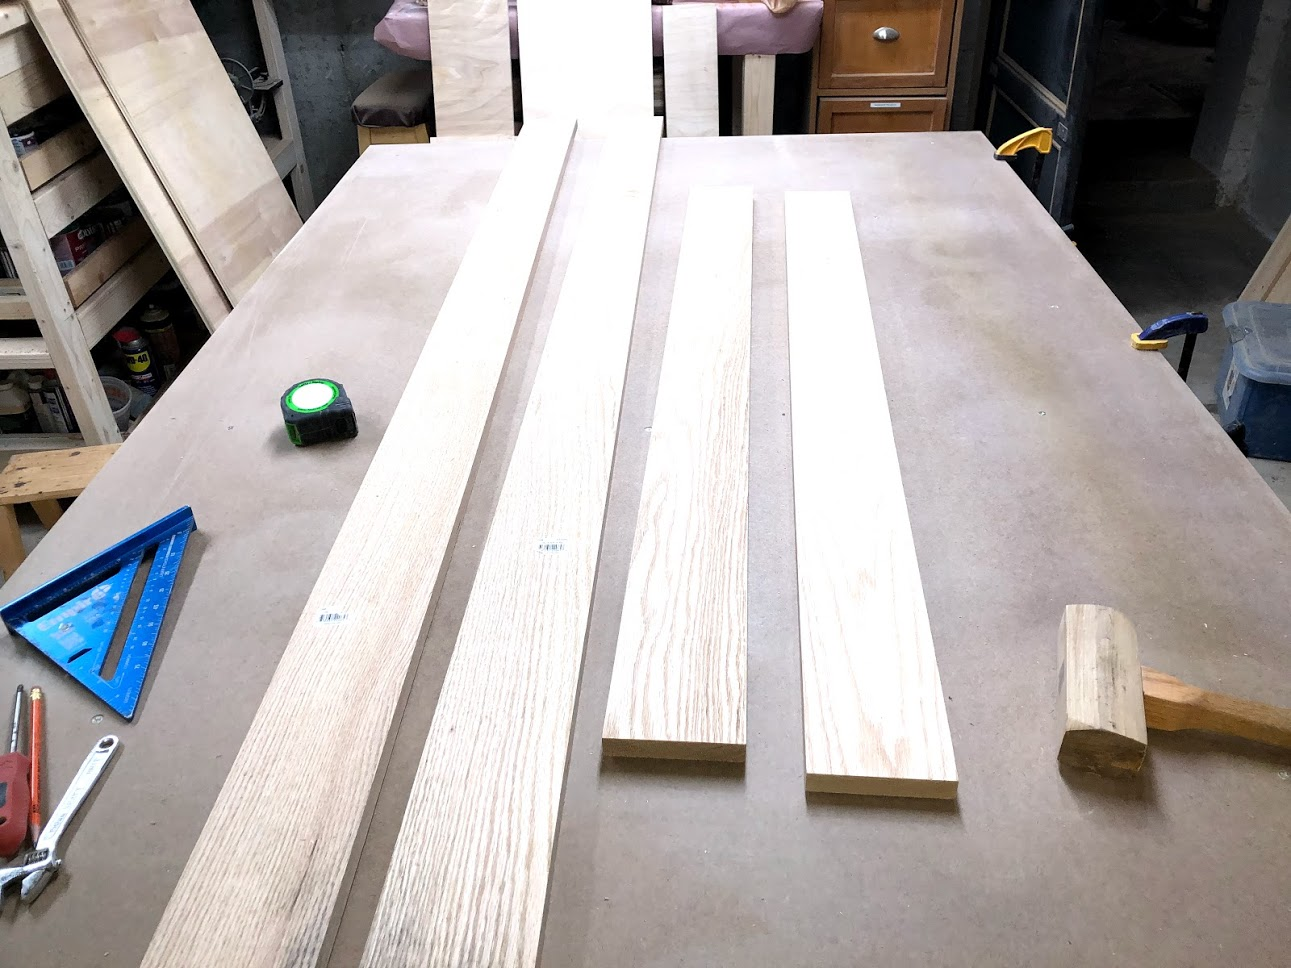 Here are the 4 pieces of oak